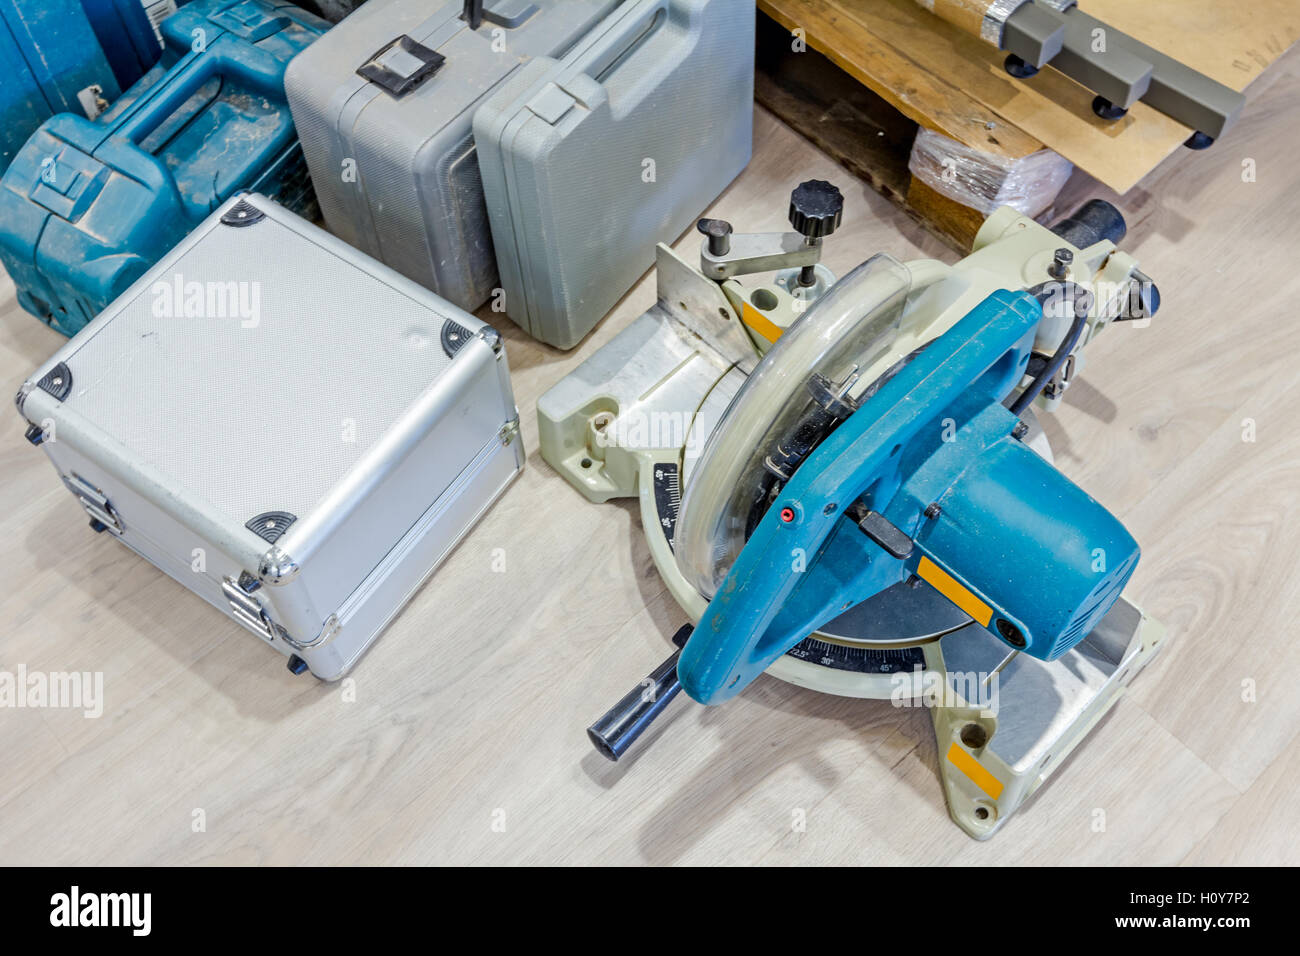 Various plastic tool boxes are on laminate floor with a lot of equipment for furnishing in workshop. - Stock Image